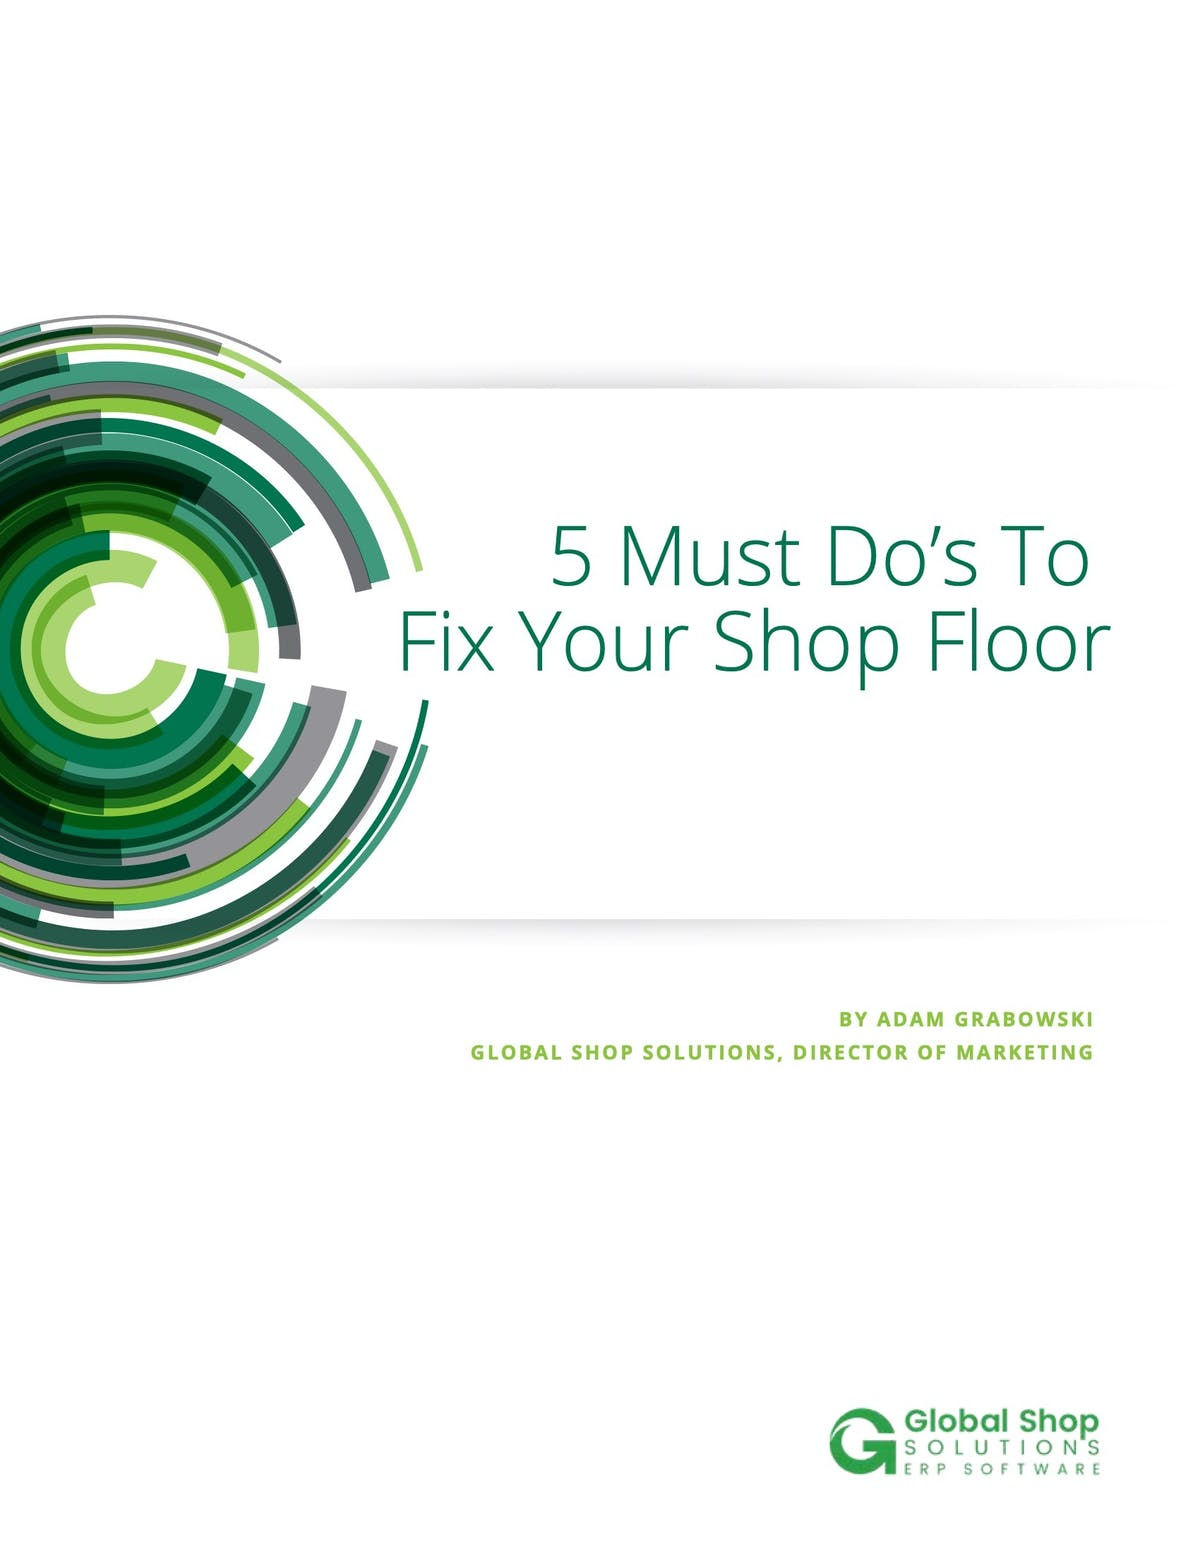 Global Shop Solutions White Paper - 5 Must Do's to Fix Your Shop Floor